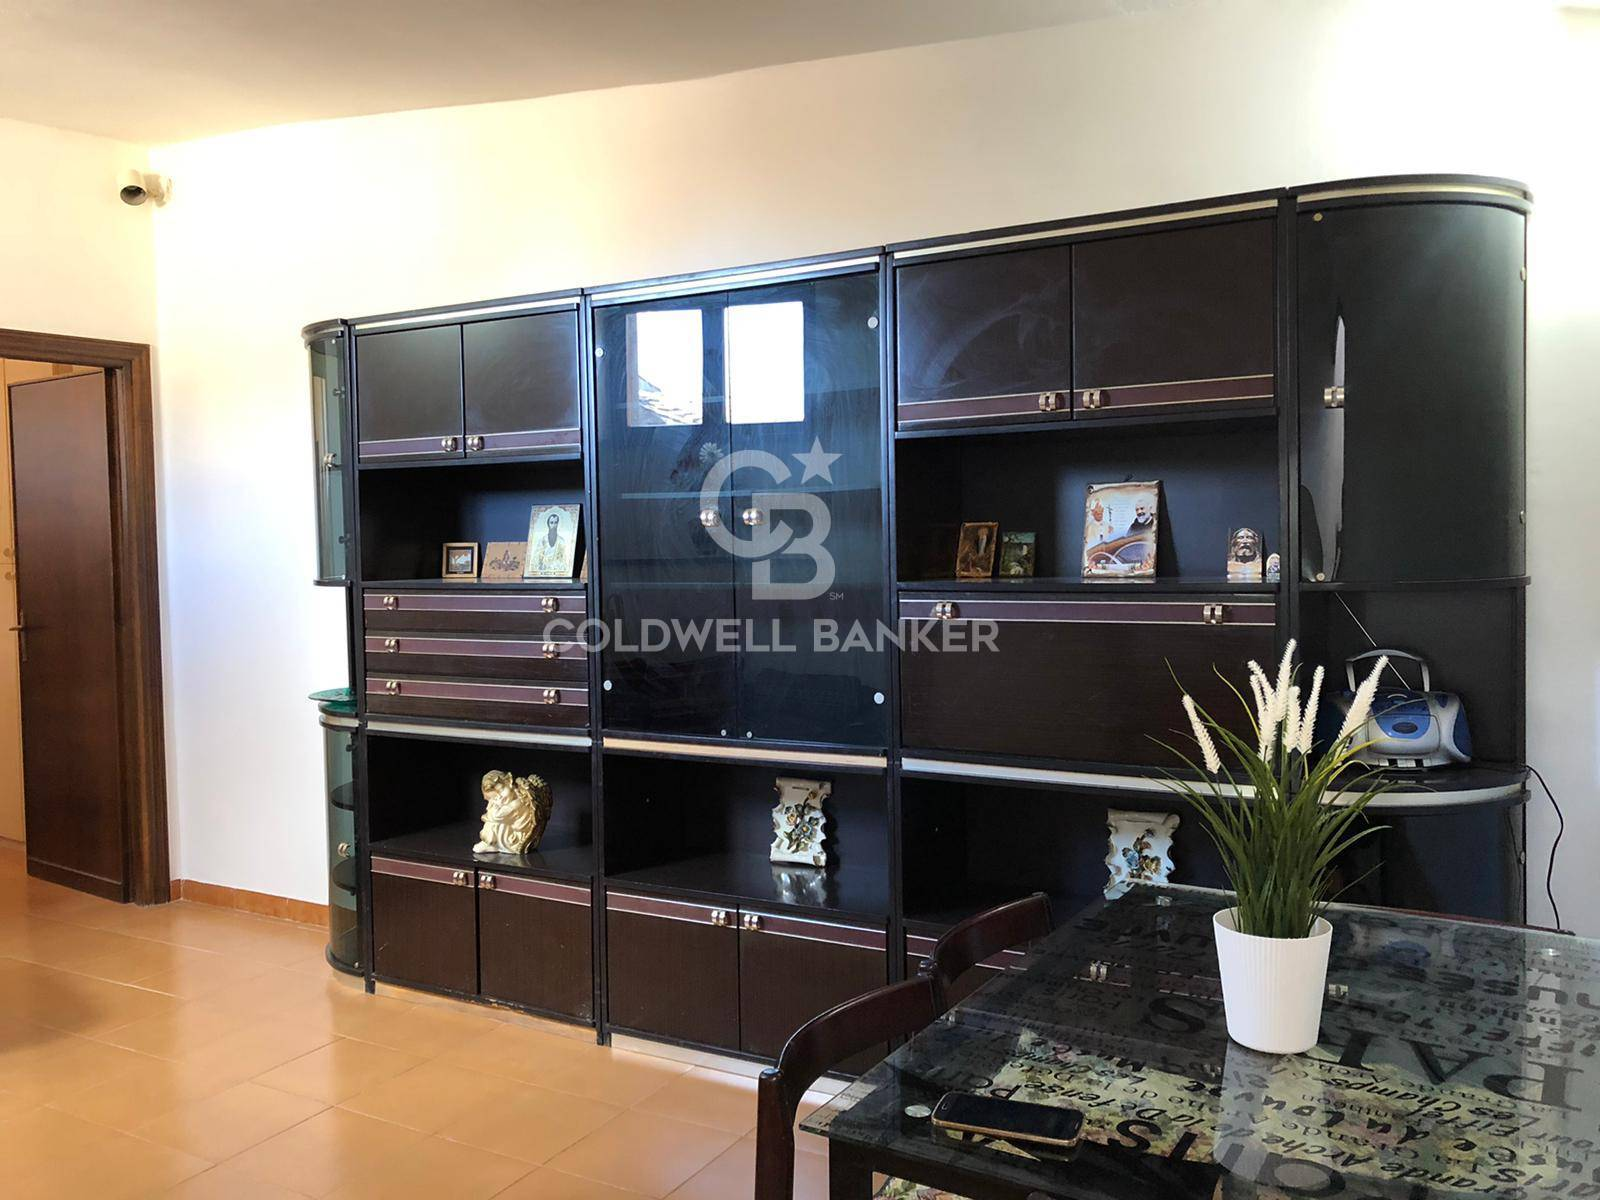 viterbo affitto quart: bagnaia coldwell-banker-frg-&-partners